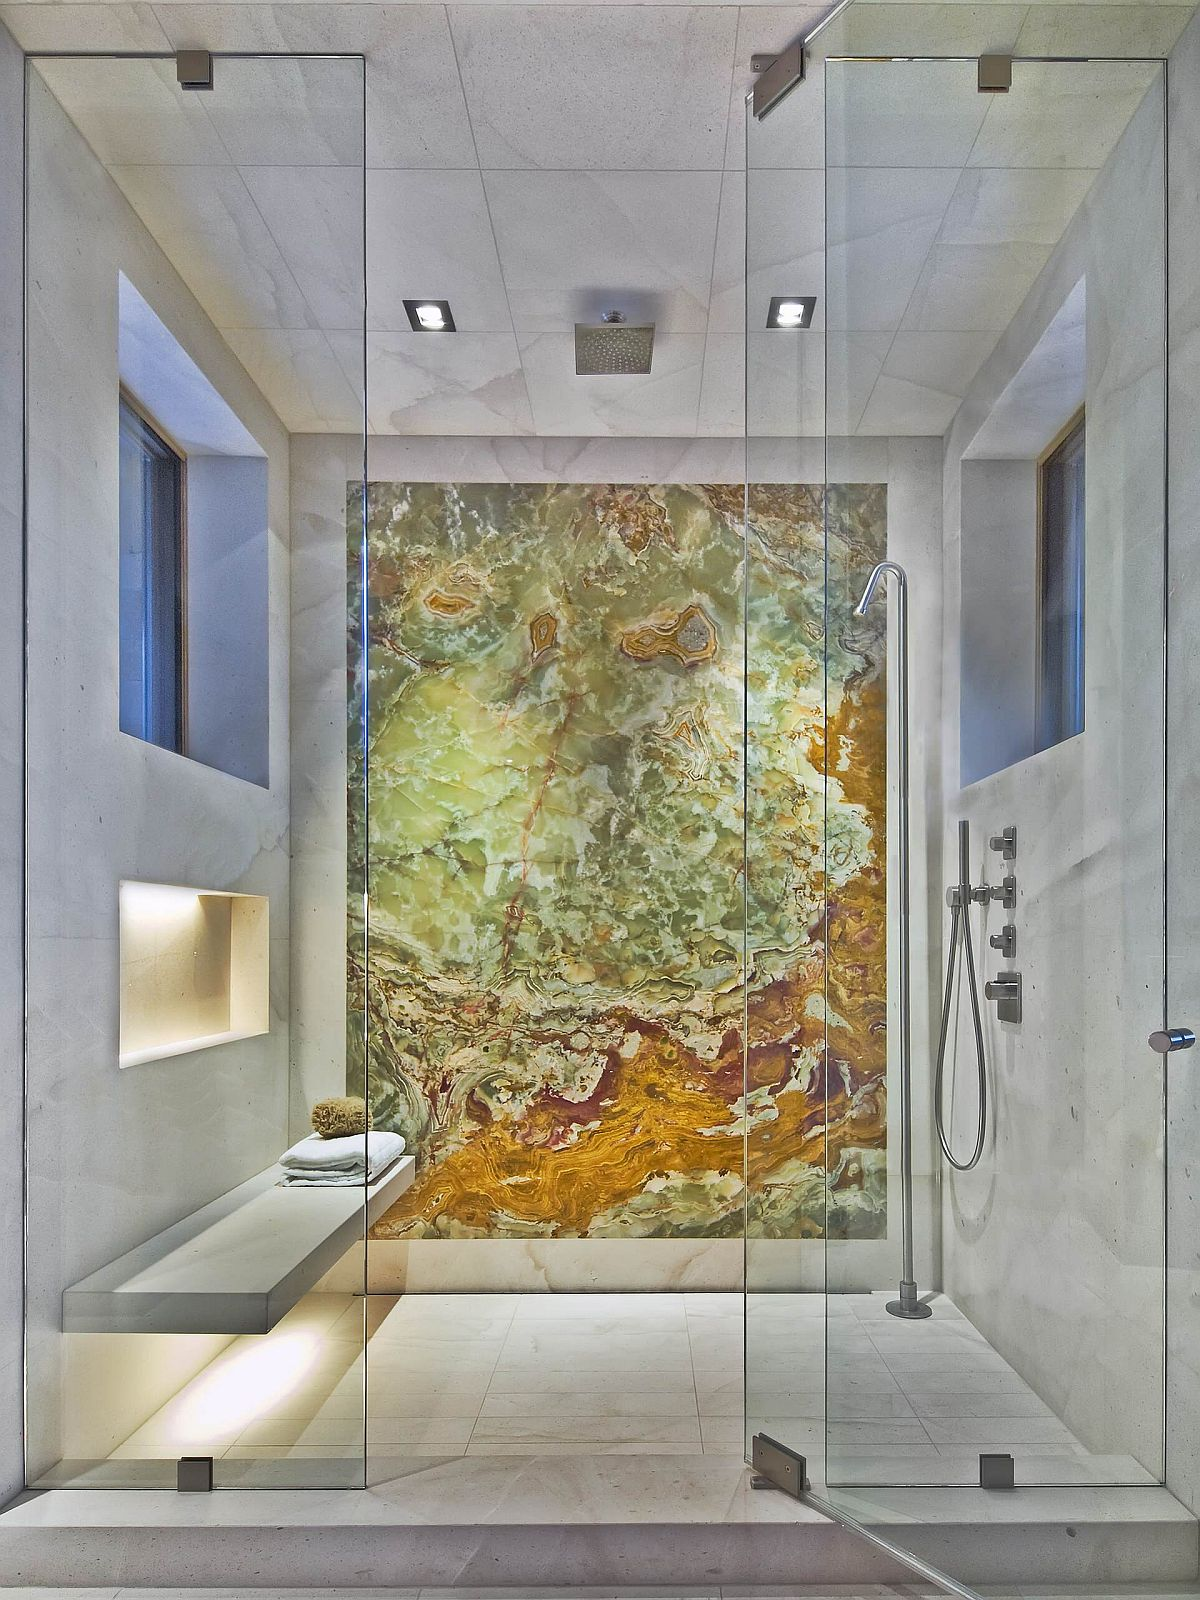 Spectacular-Onyx-backdrop-in-the-shower-area-replaces-traditional-wall-art-in-this-bathroom-26456